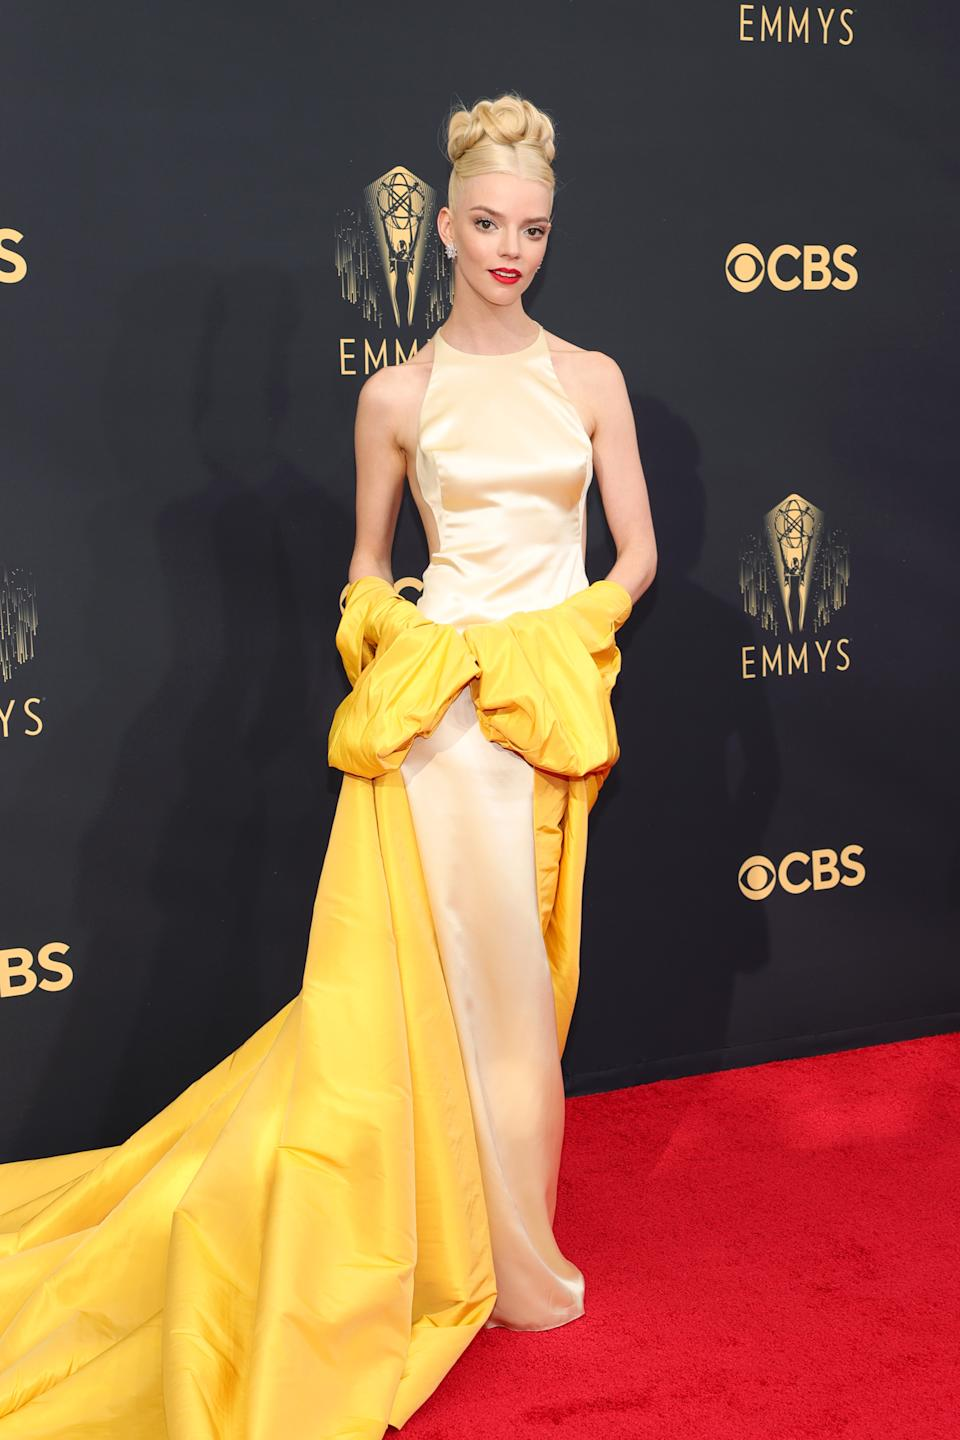 Anya Taylor-Joy wears a cream and yellow dress at the 73rd Primetime Emmy Awards at L.A. LIVE on September 19, 2021 in Los Angeles, California